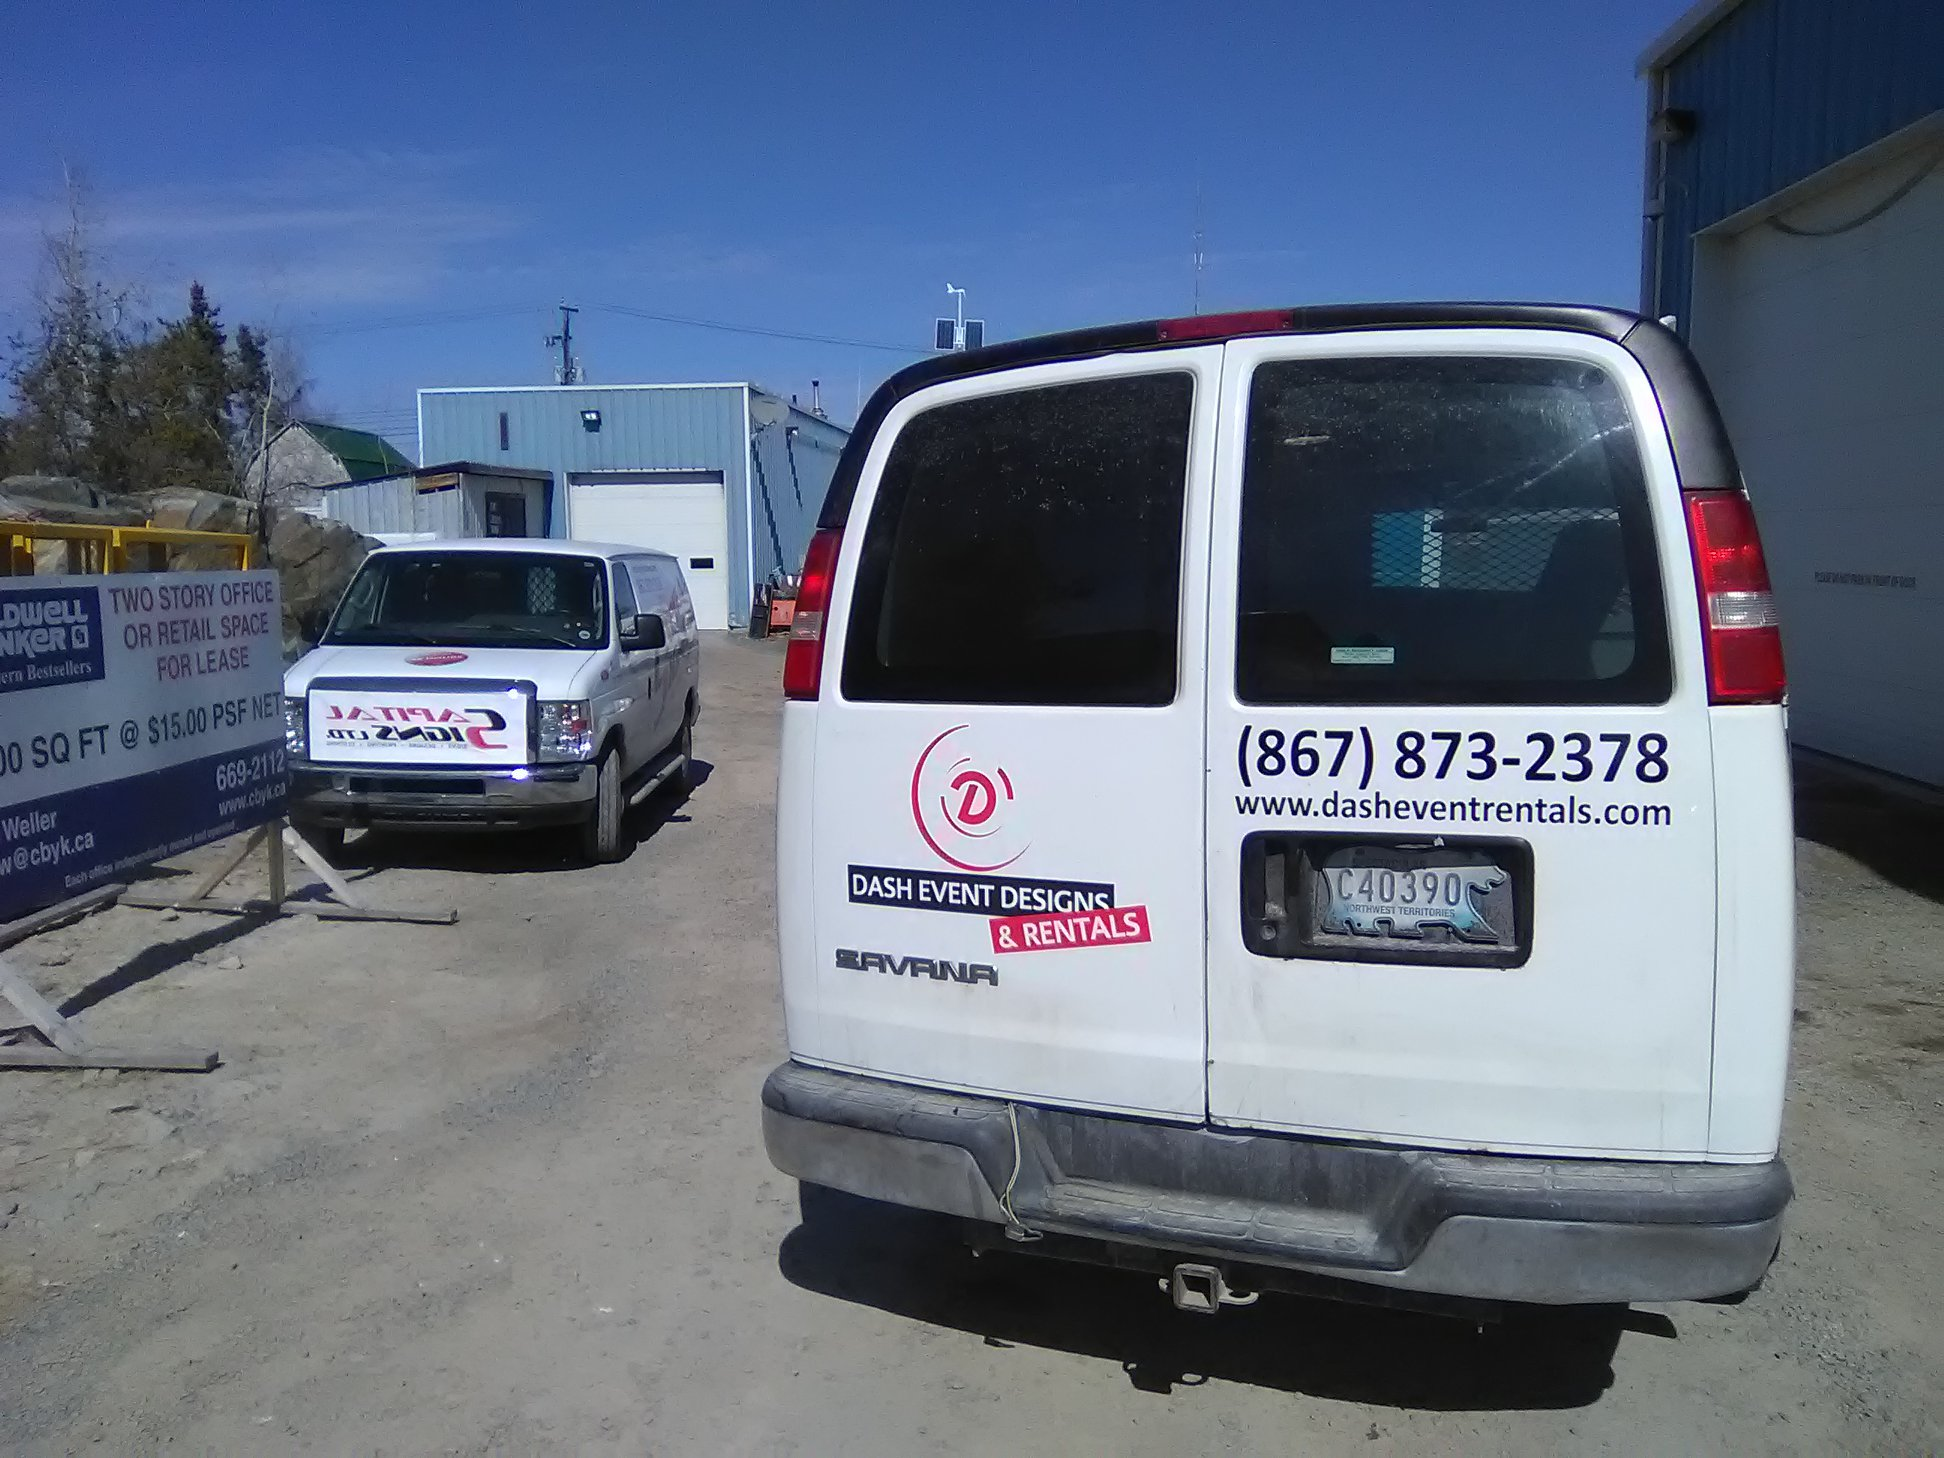 Dash Event Designs & Rentals commercial vehicle wrap